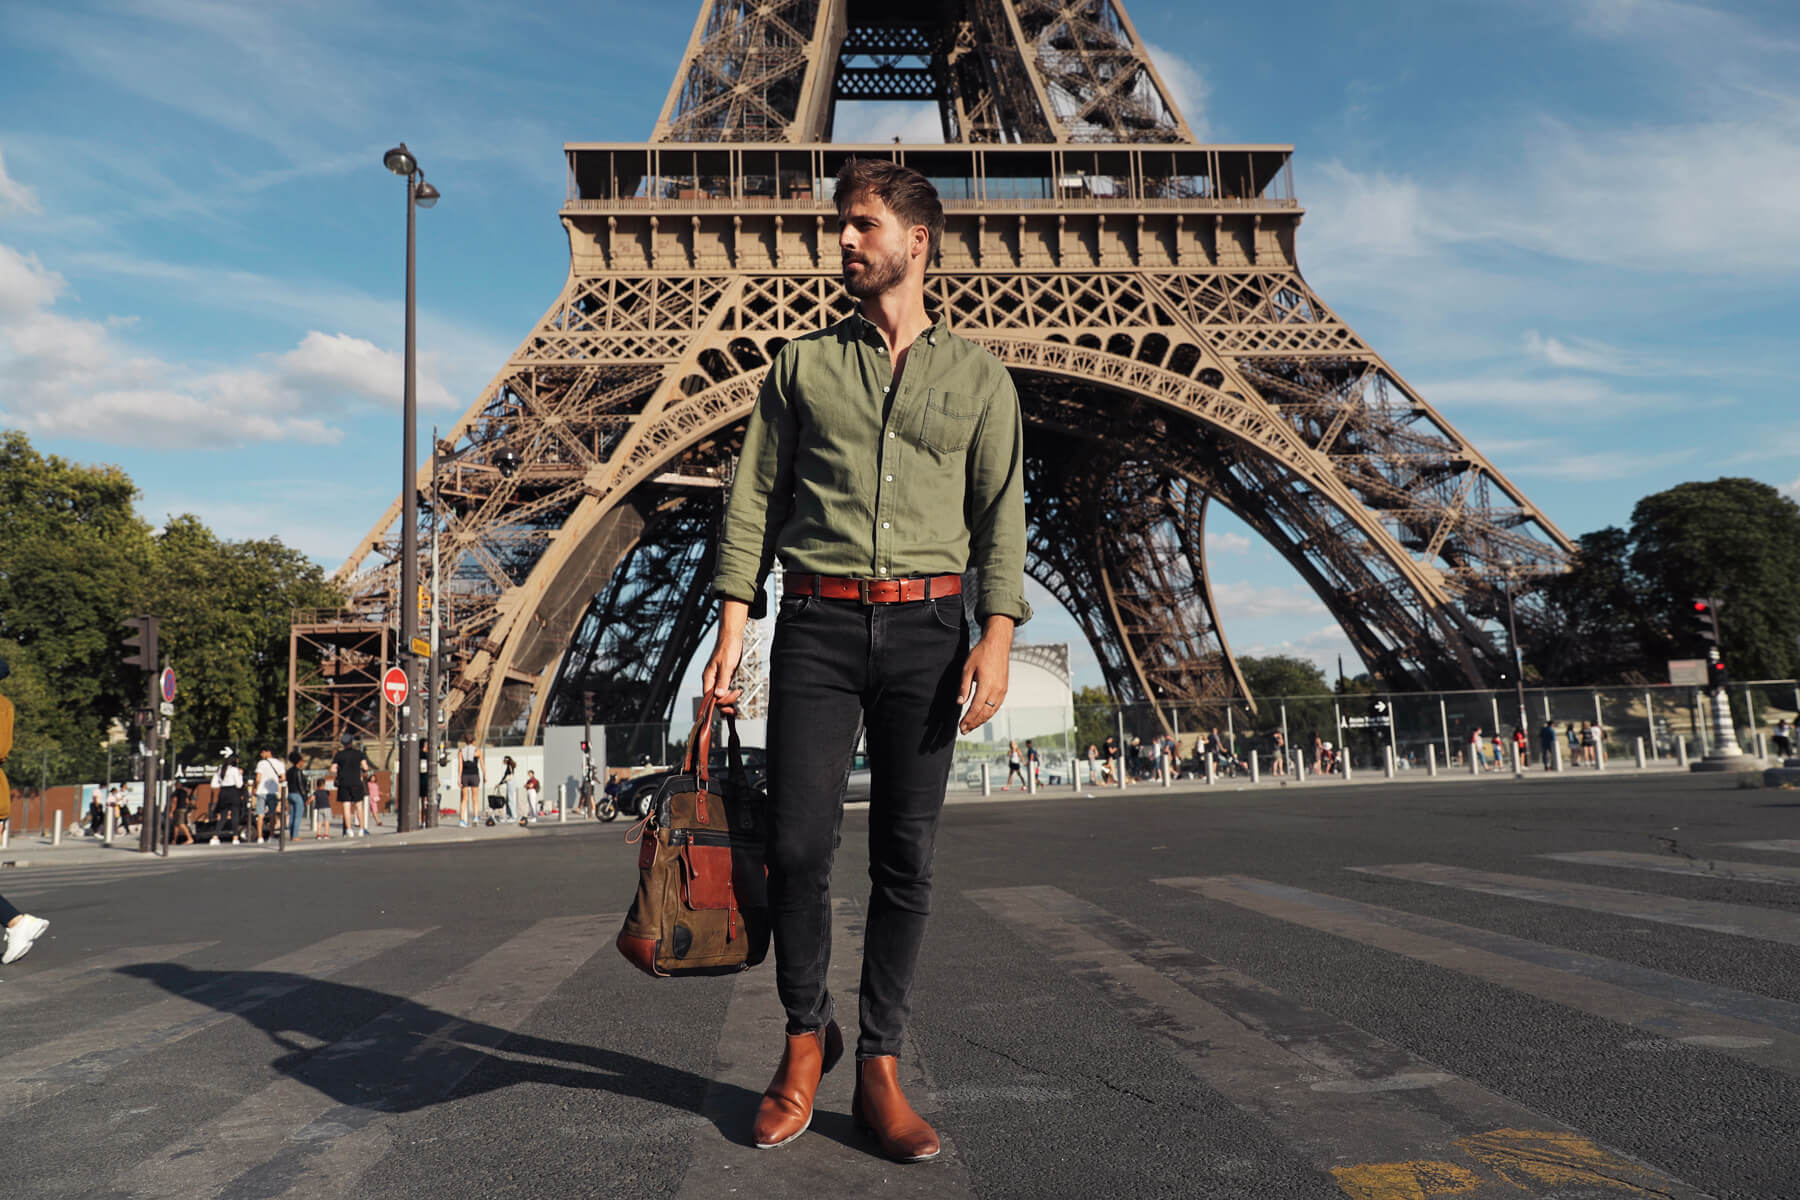 Man standing in front of Eiffel tower holding a leather bag and wearing a leather belt